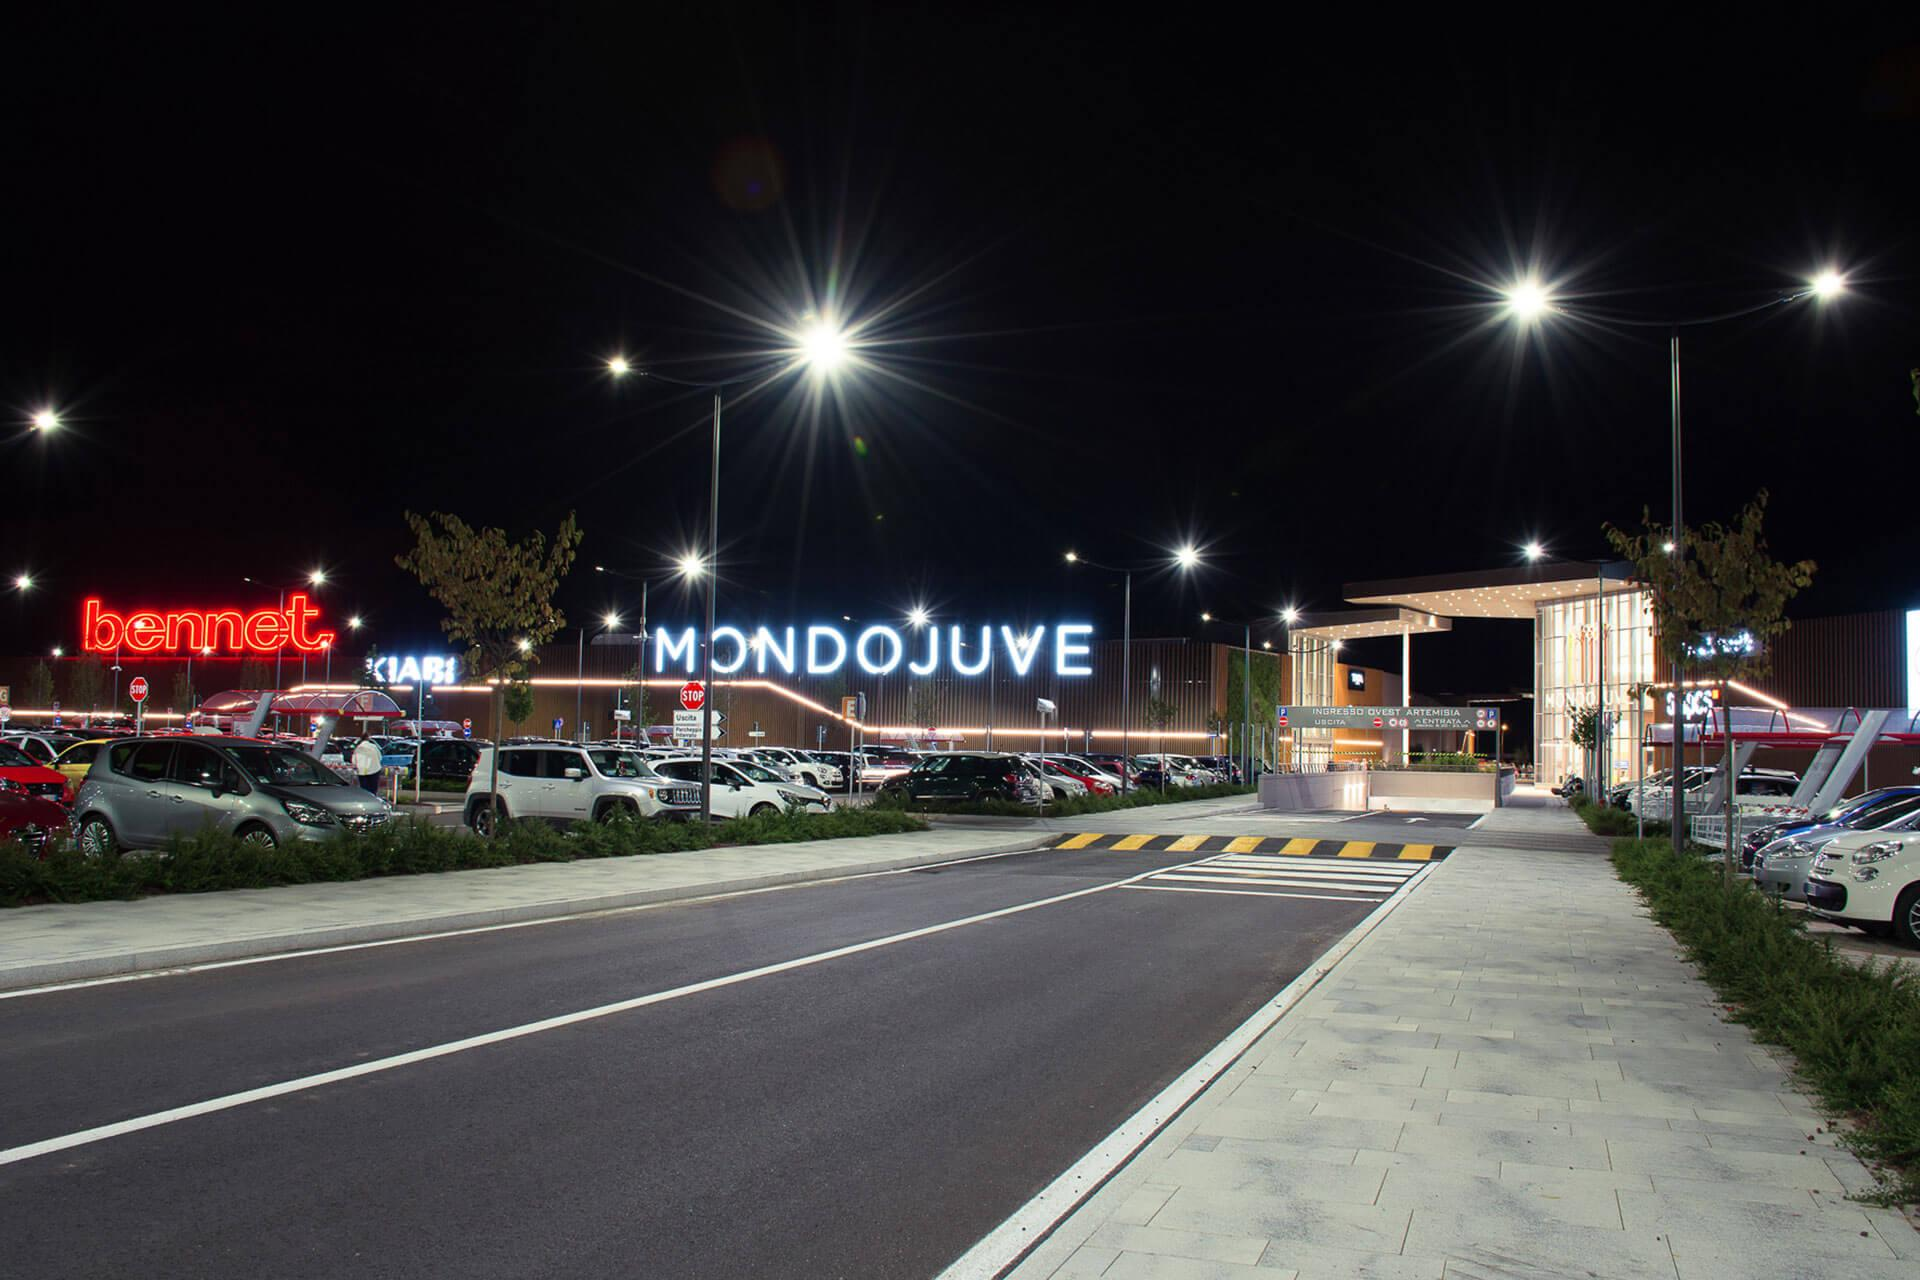 Axia urban luminaire guarantees safety and comfort for all users in the car park of Mondojuve shopping centre